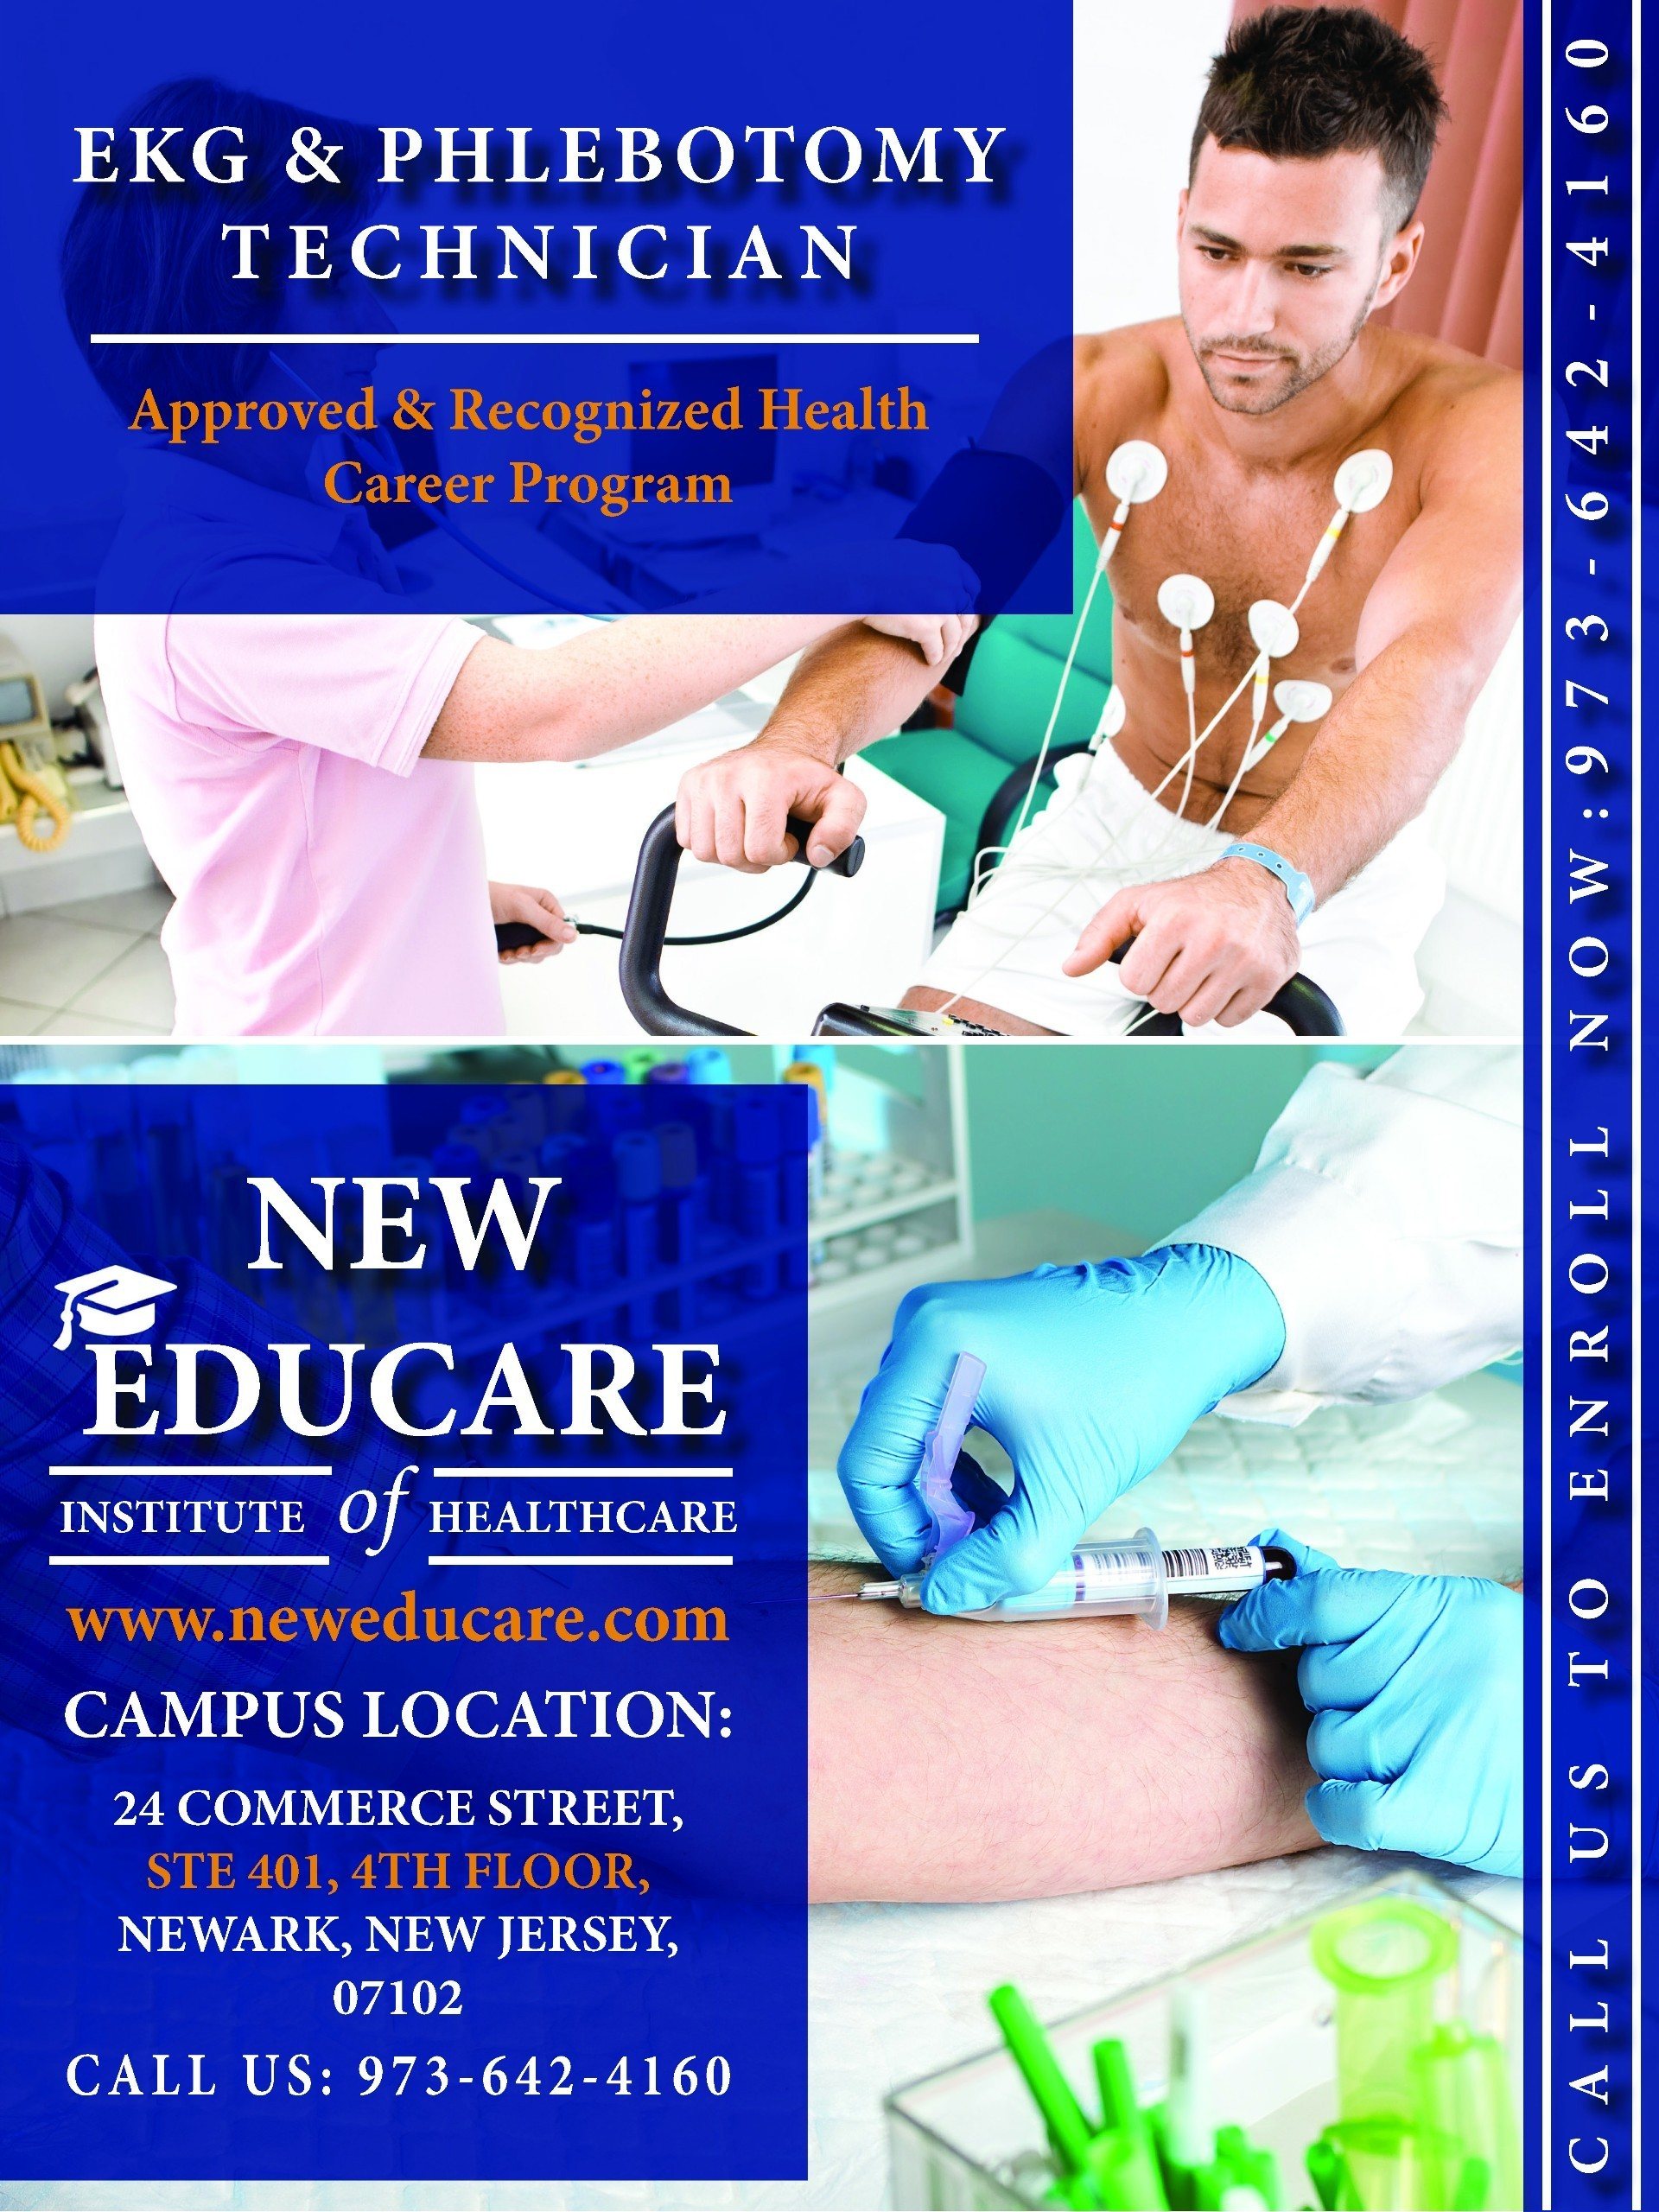 Certified Ekg And Phlebotomy Technician Training Program In Nj